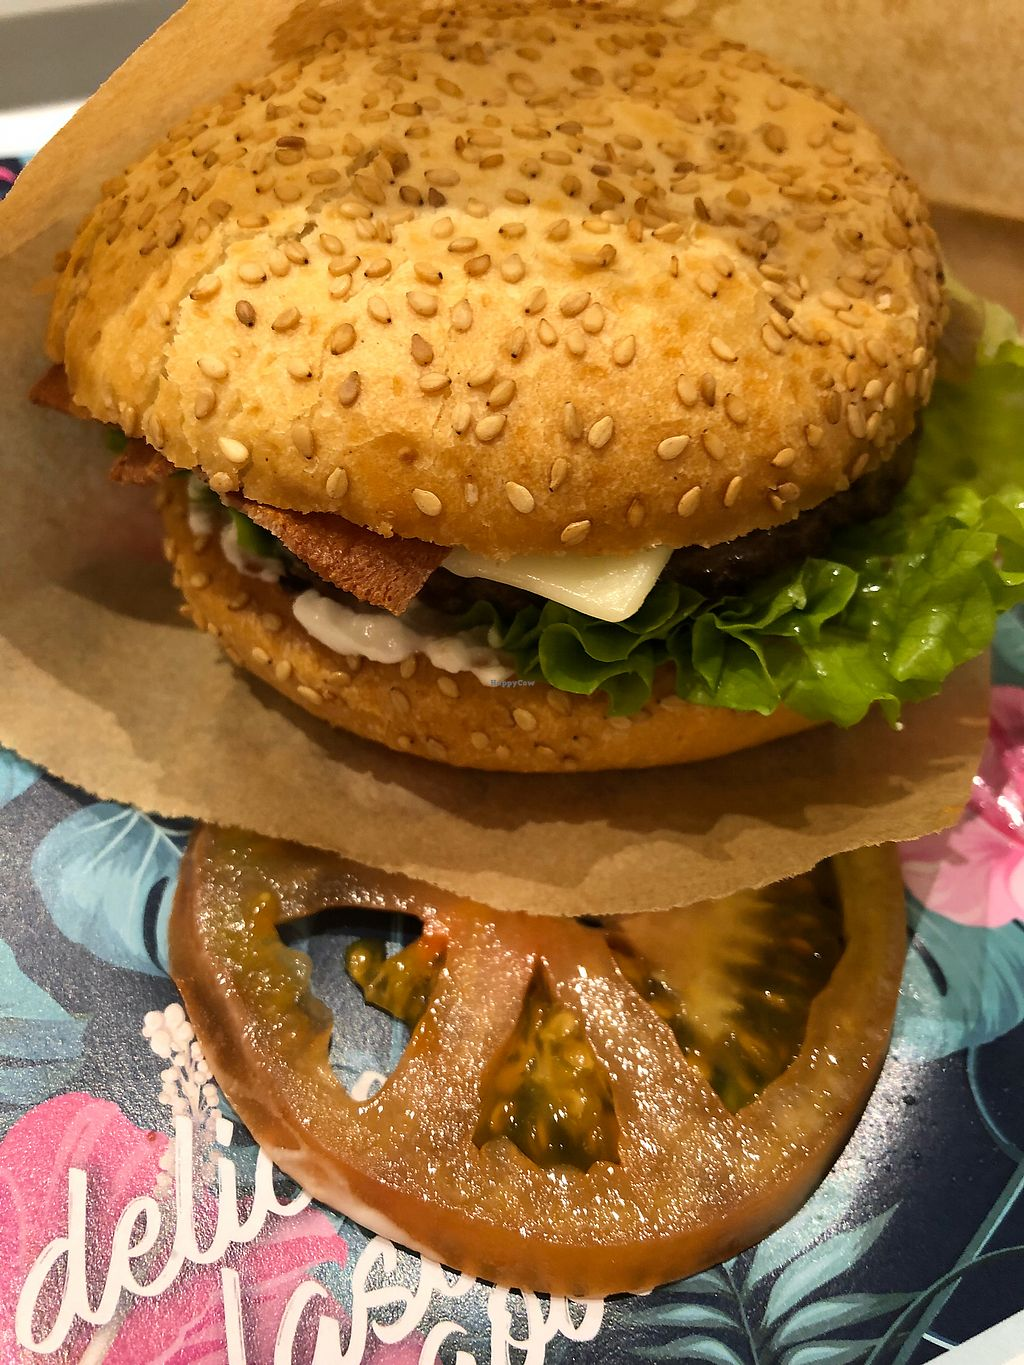 """Photo of The Vurger - Santa Ana  by <a href=""""/members/profile/_hael"""">_hael</a> <br/>Original Vurger <br/> February 8, 2018  - <a href='/contact/abuse/image/107067/356545'>Report</a>"""